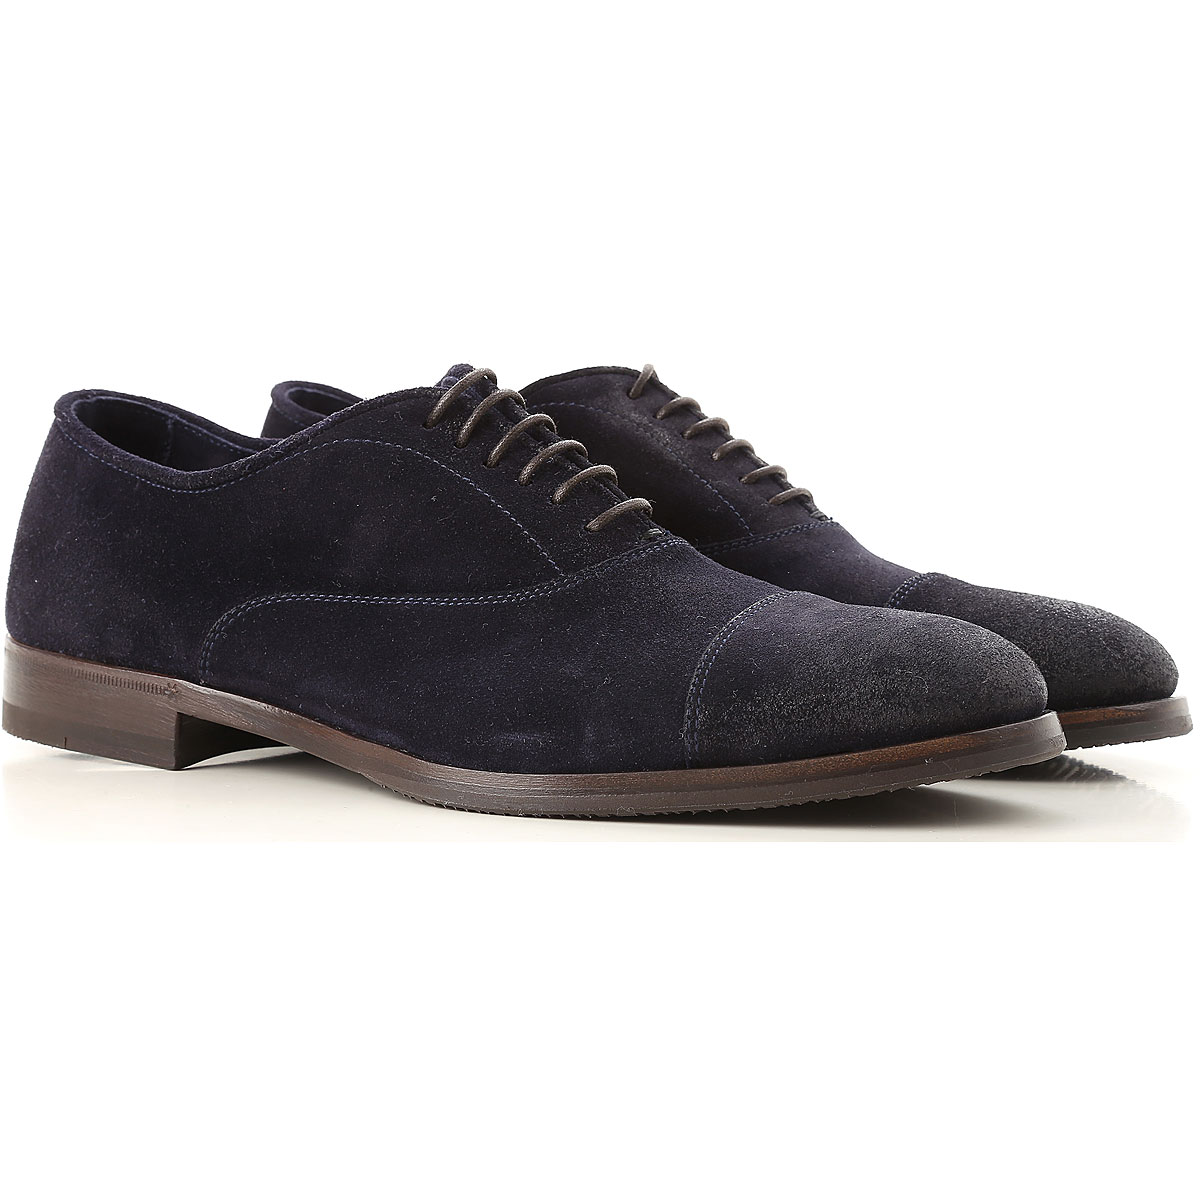 Image of Henderson Lace Up Shoes for Men Oxfords, Derbies and Brogues, Midnight, suede, 2017, 10 10.5 11 11.5 7.5 8 8.5 9 9.5